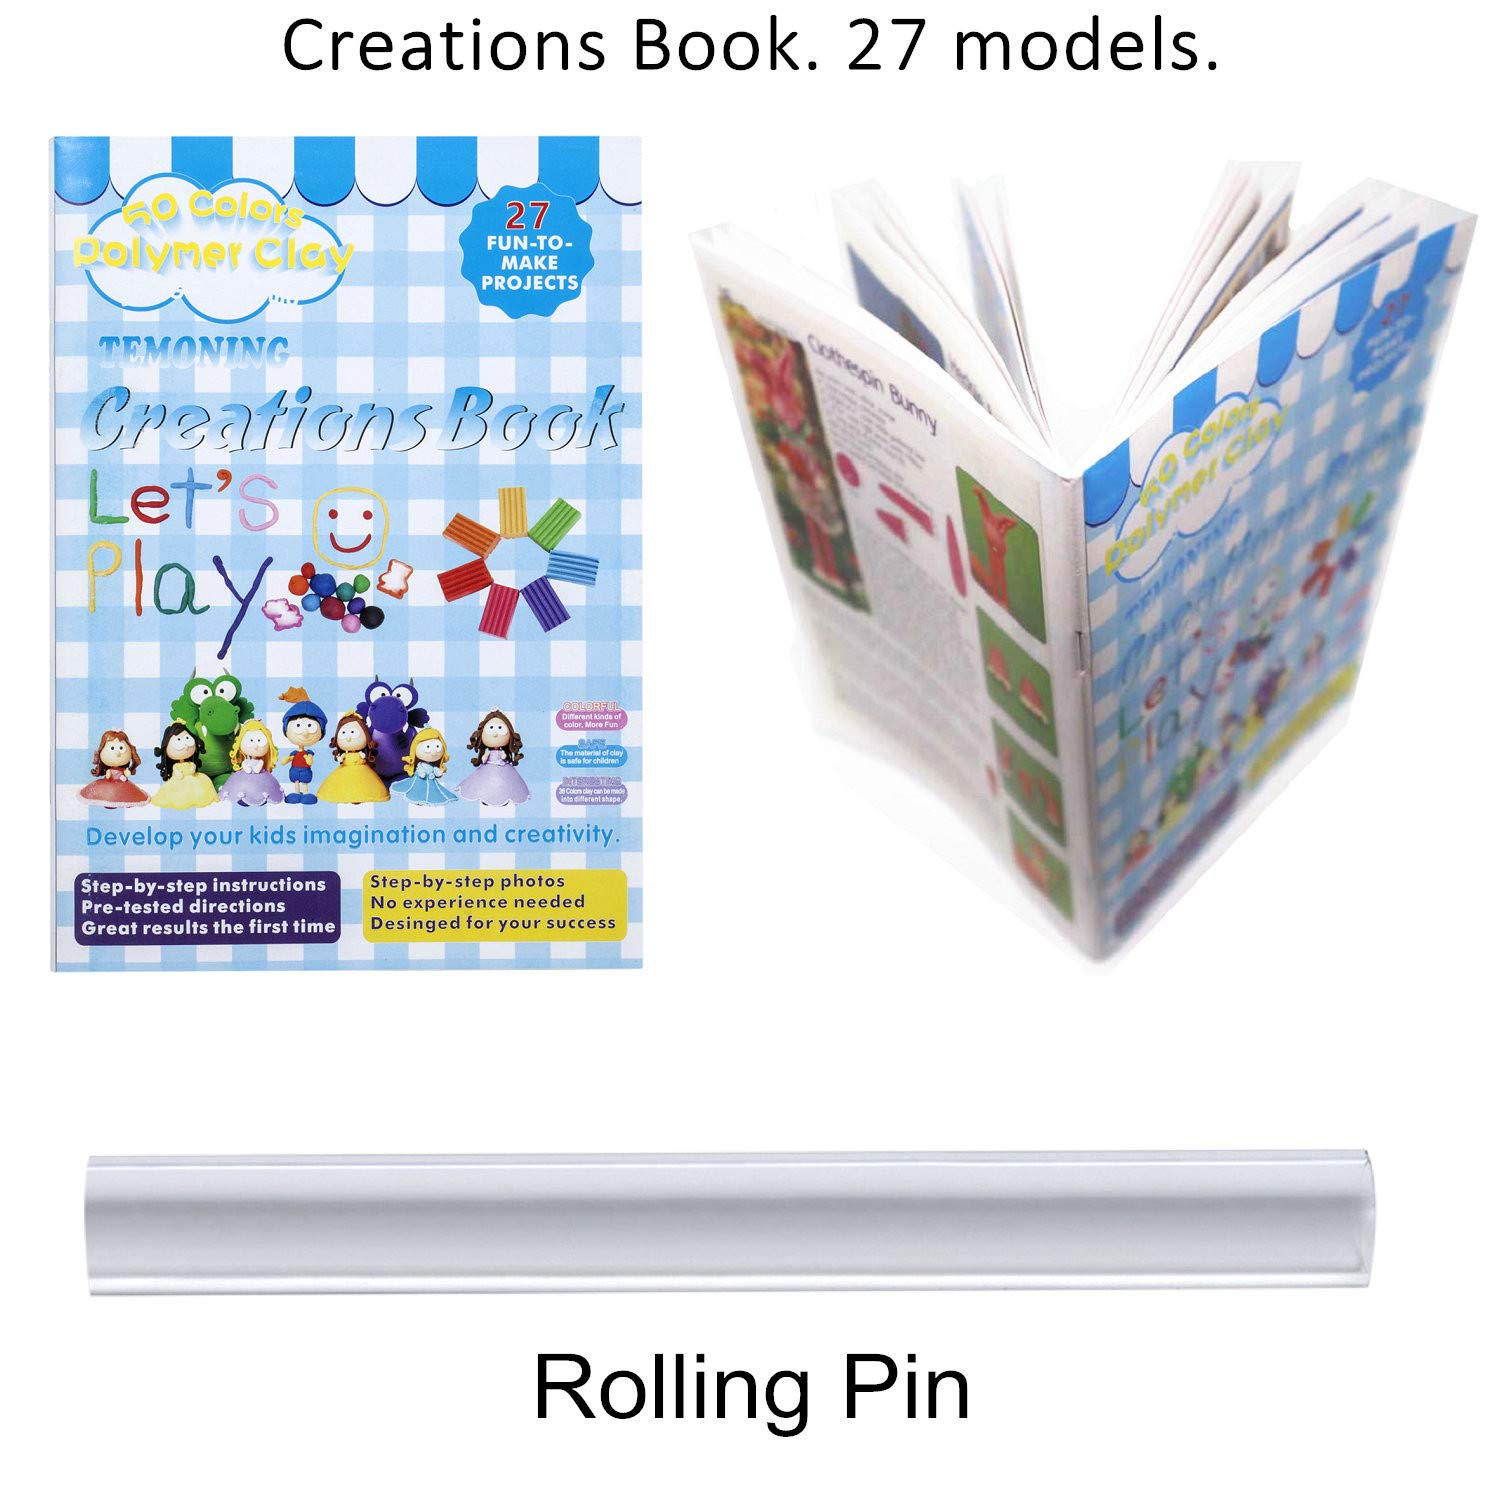 Modelling Clay Soft and Nontoxic DIY Plastic Tools and Accessories size 5*3*1 CM, 0.705 OZ Polymer Clay 50 Colors Oven Bake Clay with 27 Models Creations Book and Rolling Pin